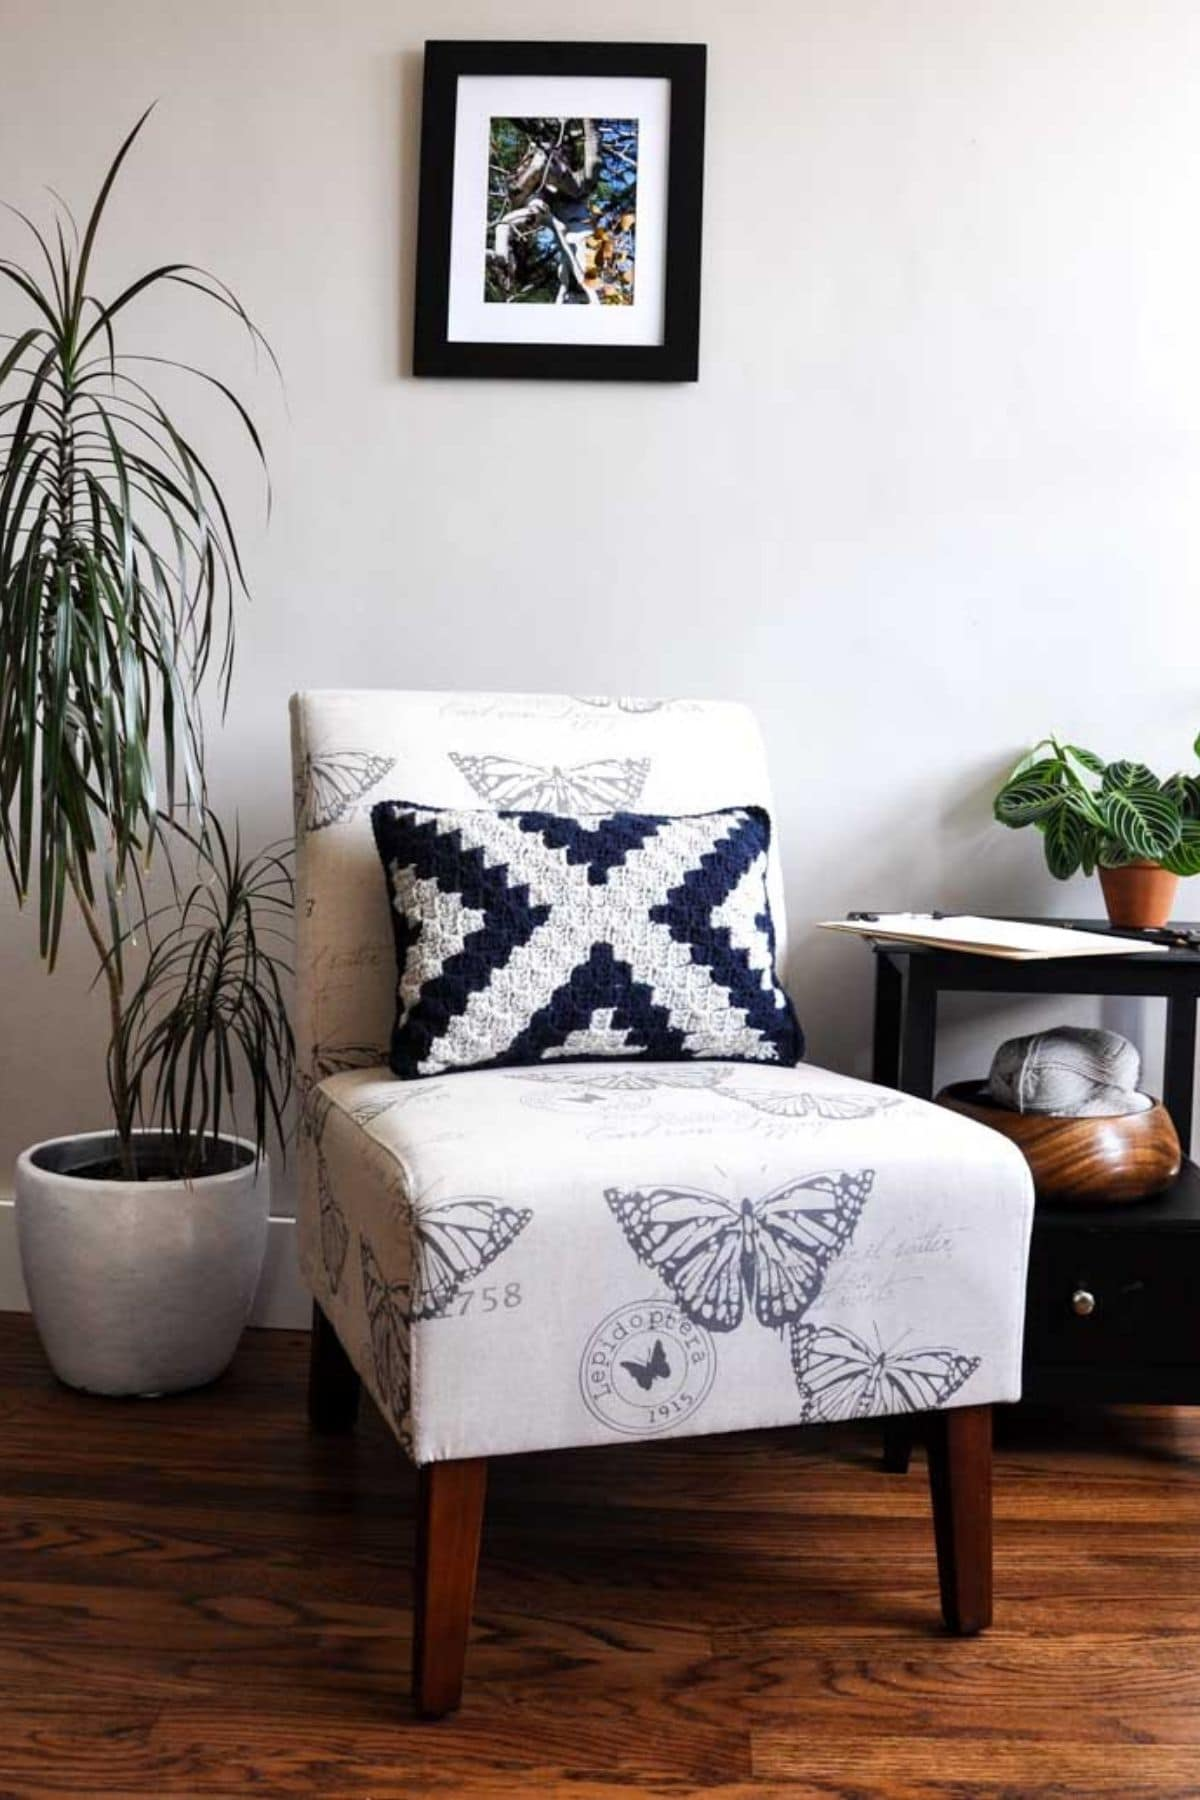 Black and white pillow with an x on the middle